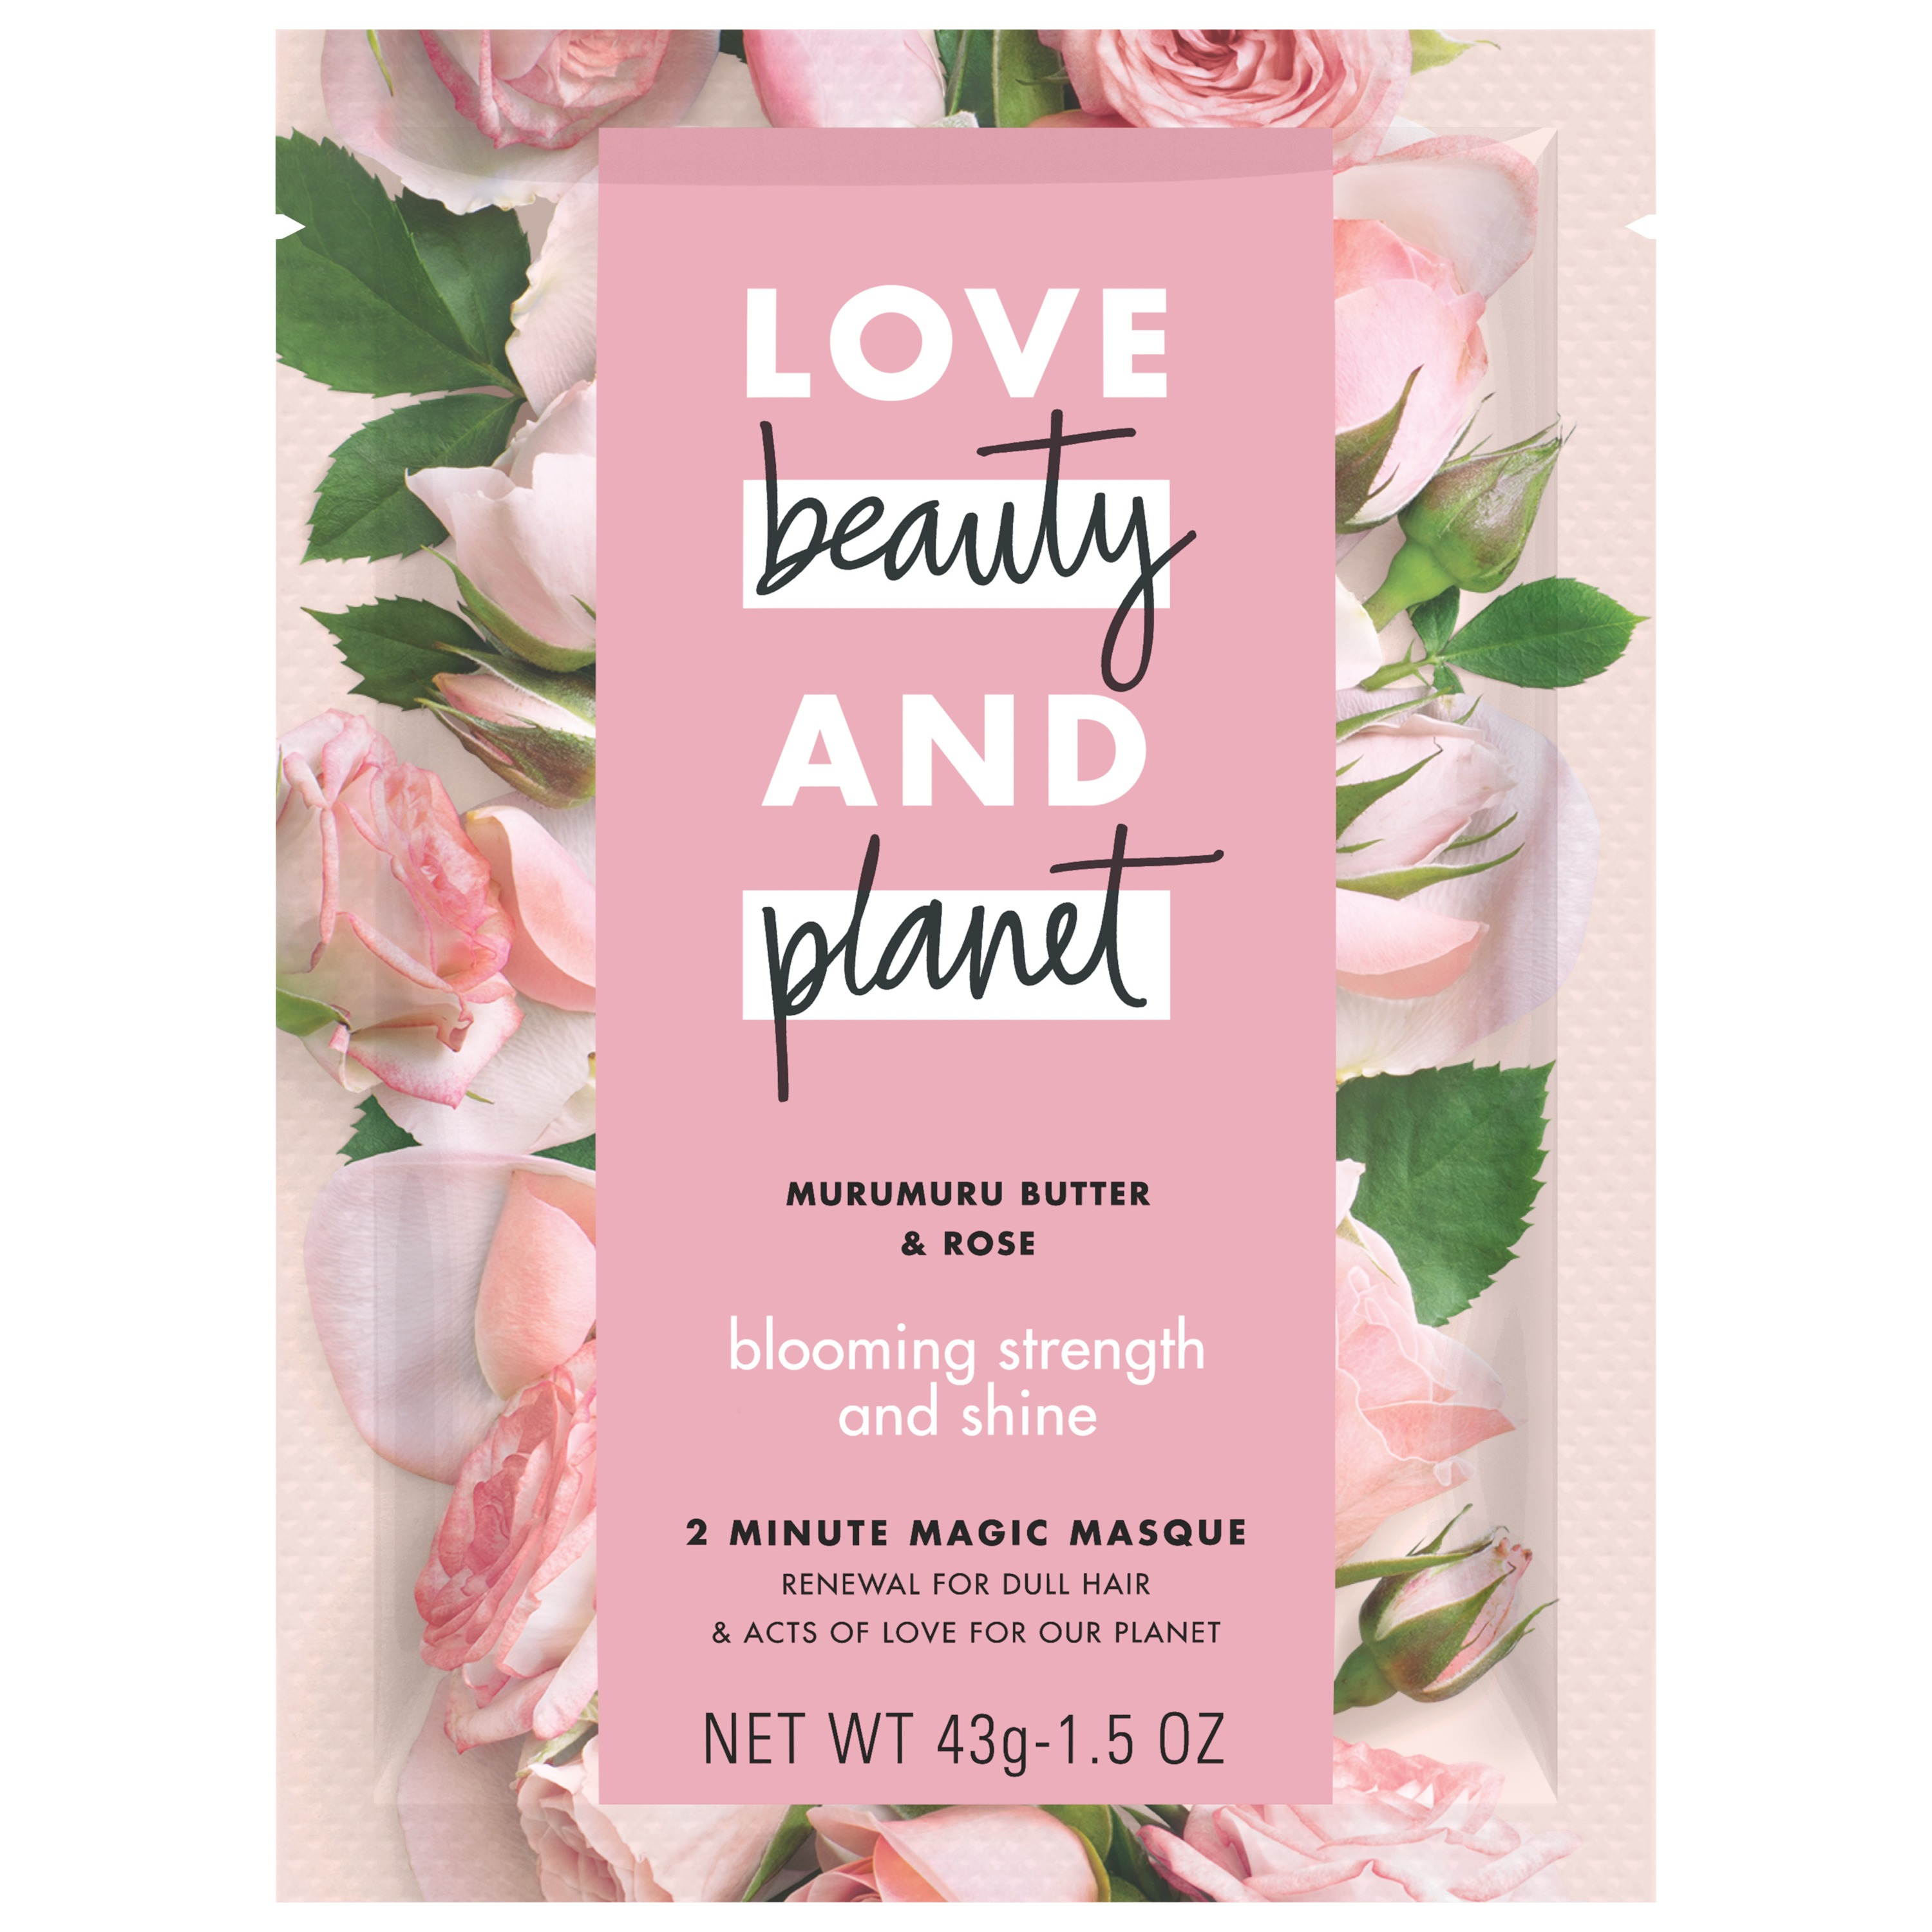 Love Beauty And Planet Murumuru Butter & Rose Hair Mask Blooming Strength & Shine 1.5 oz